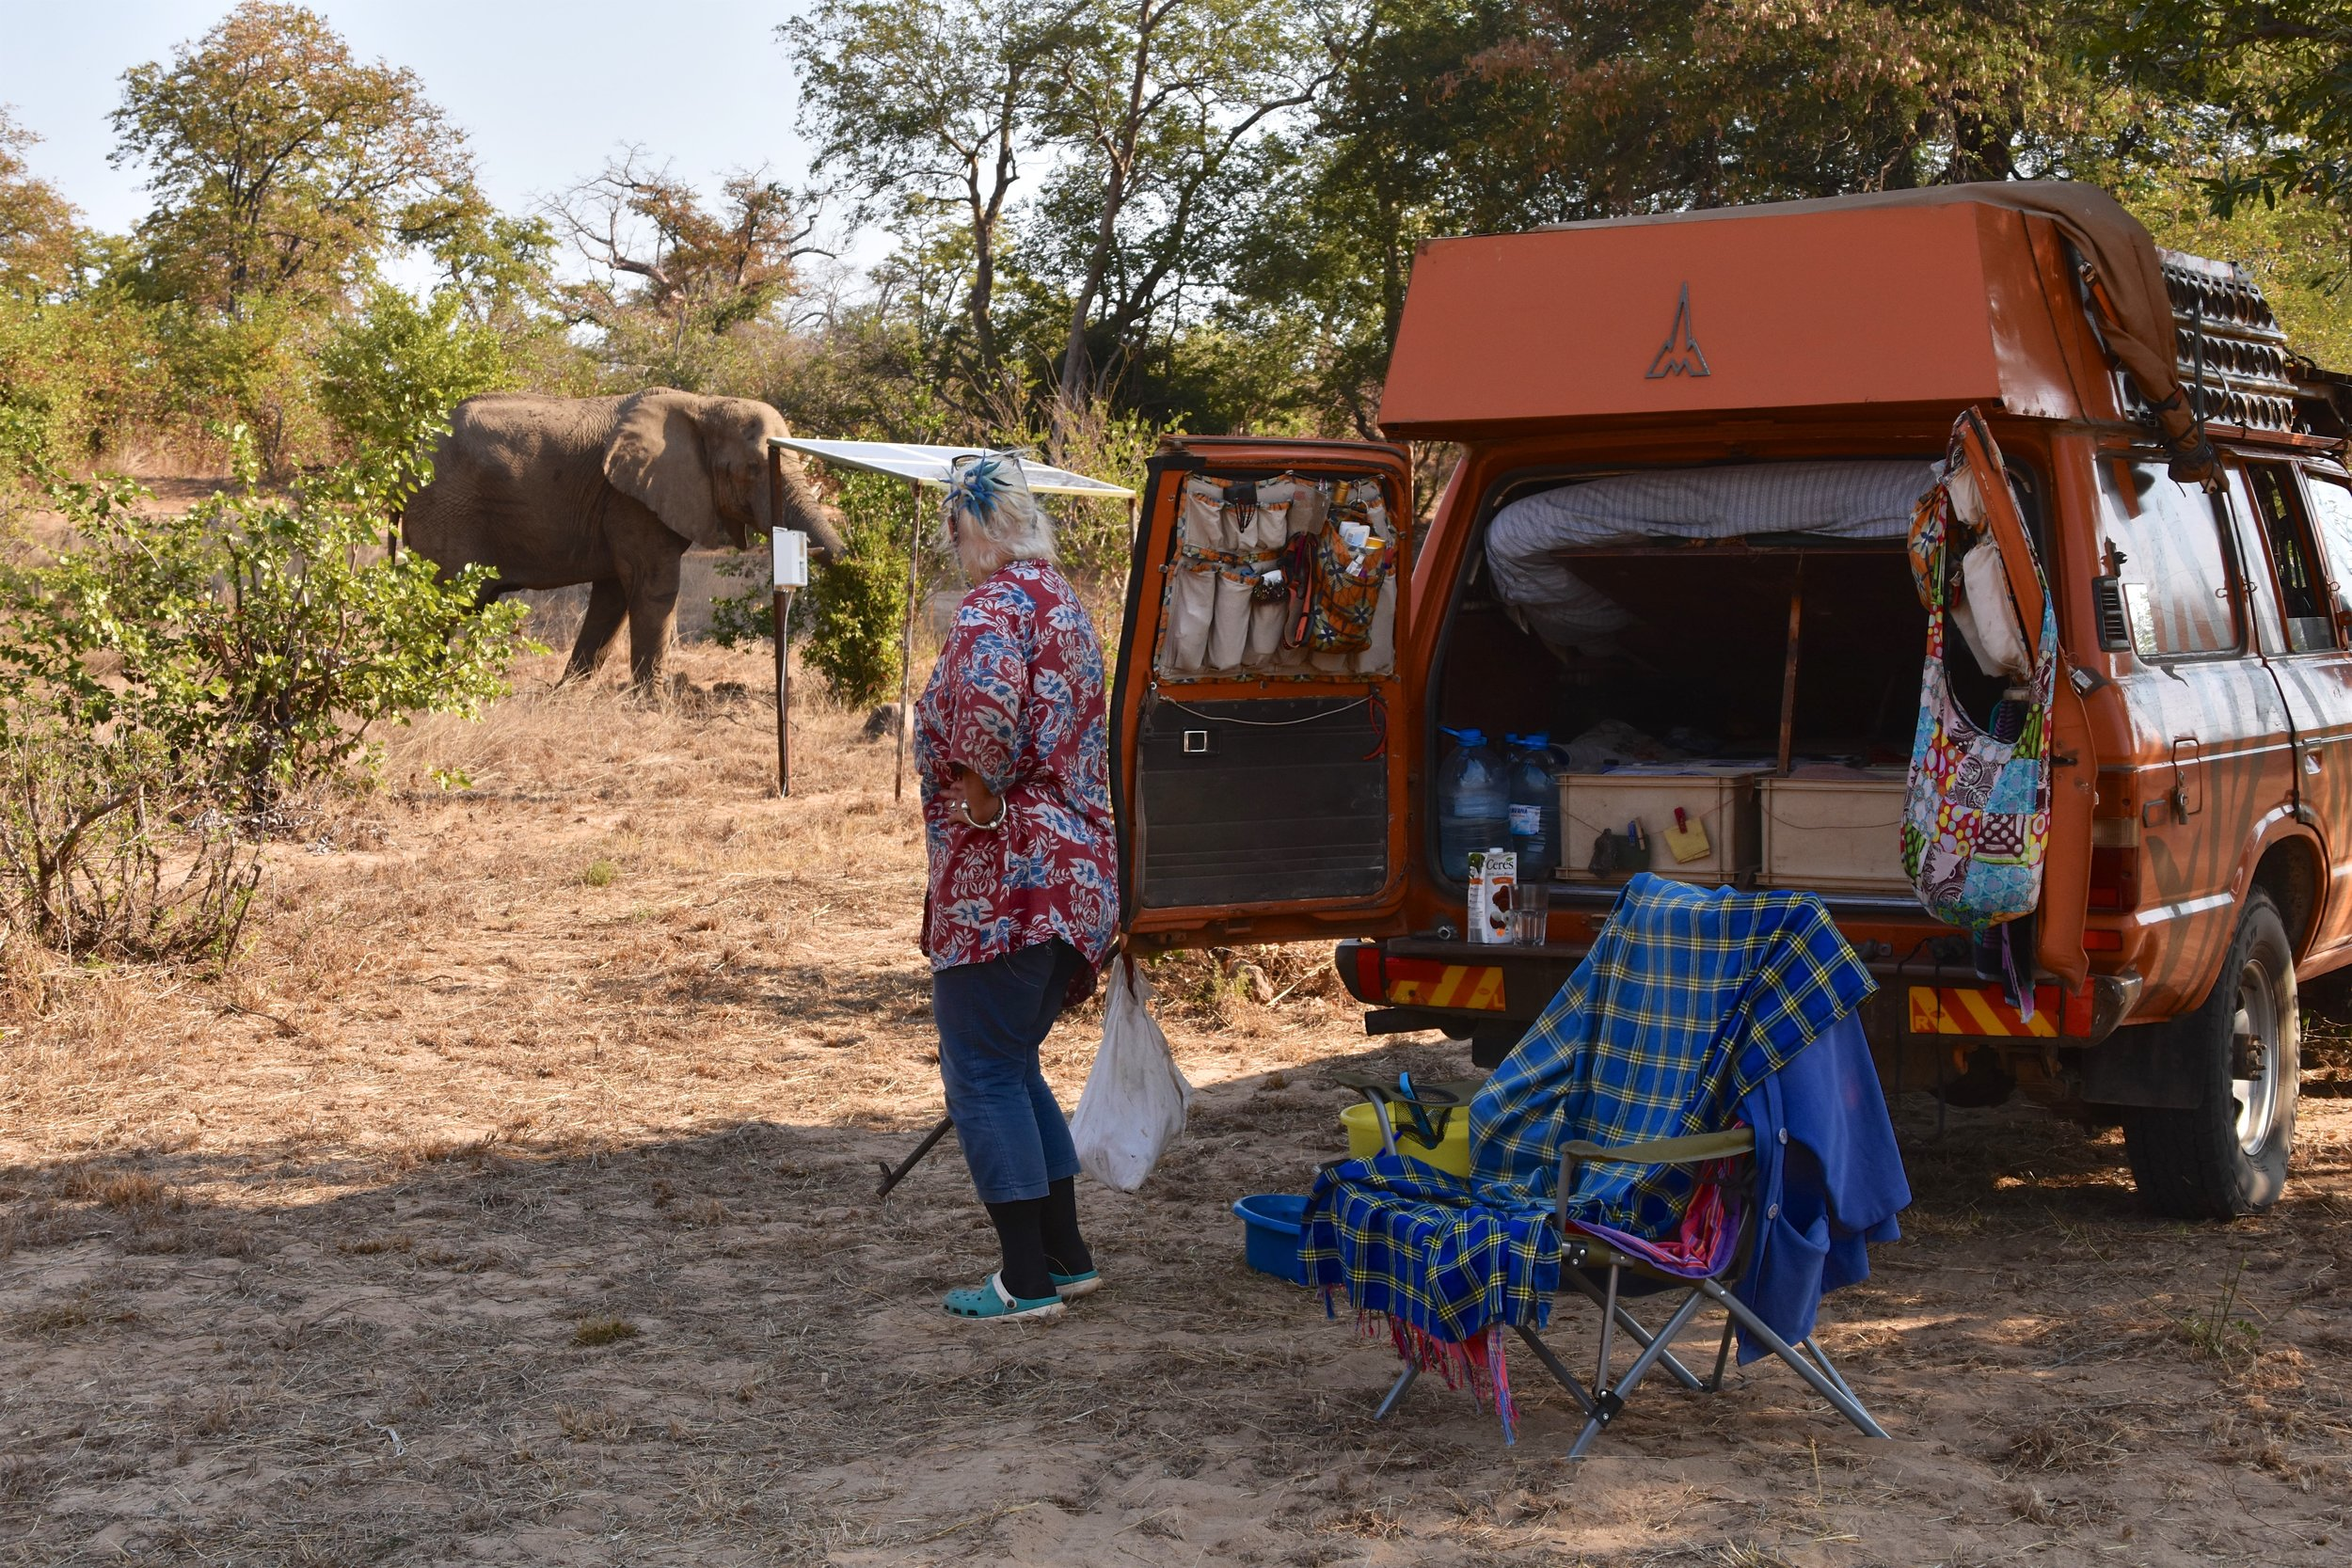 Camping with elephants, that's the Africa I love!